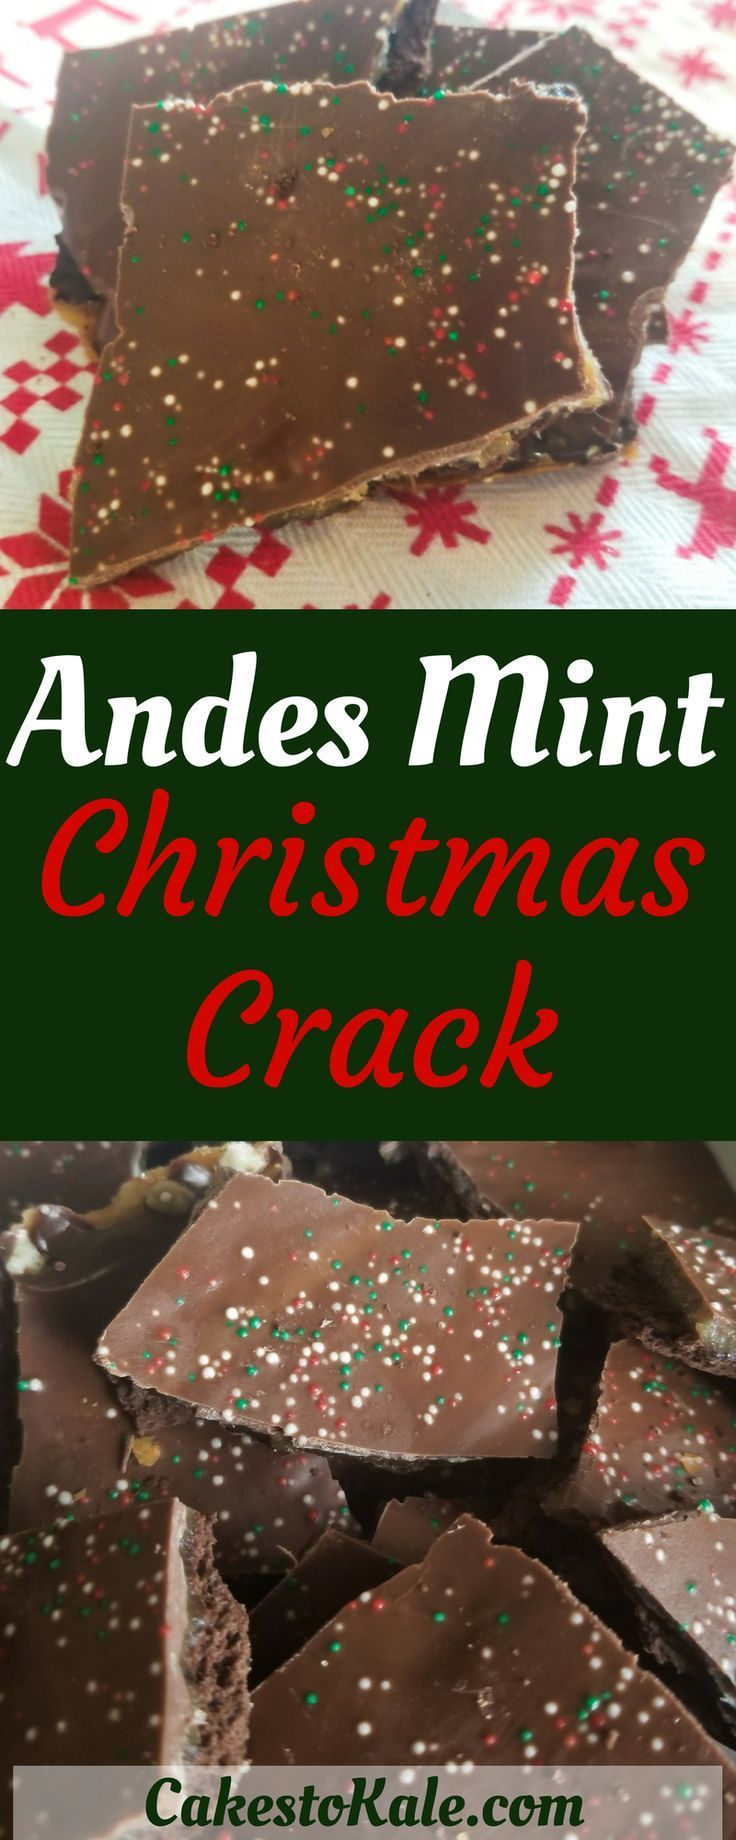 Andes Mint Christmas Crack